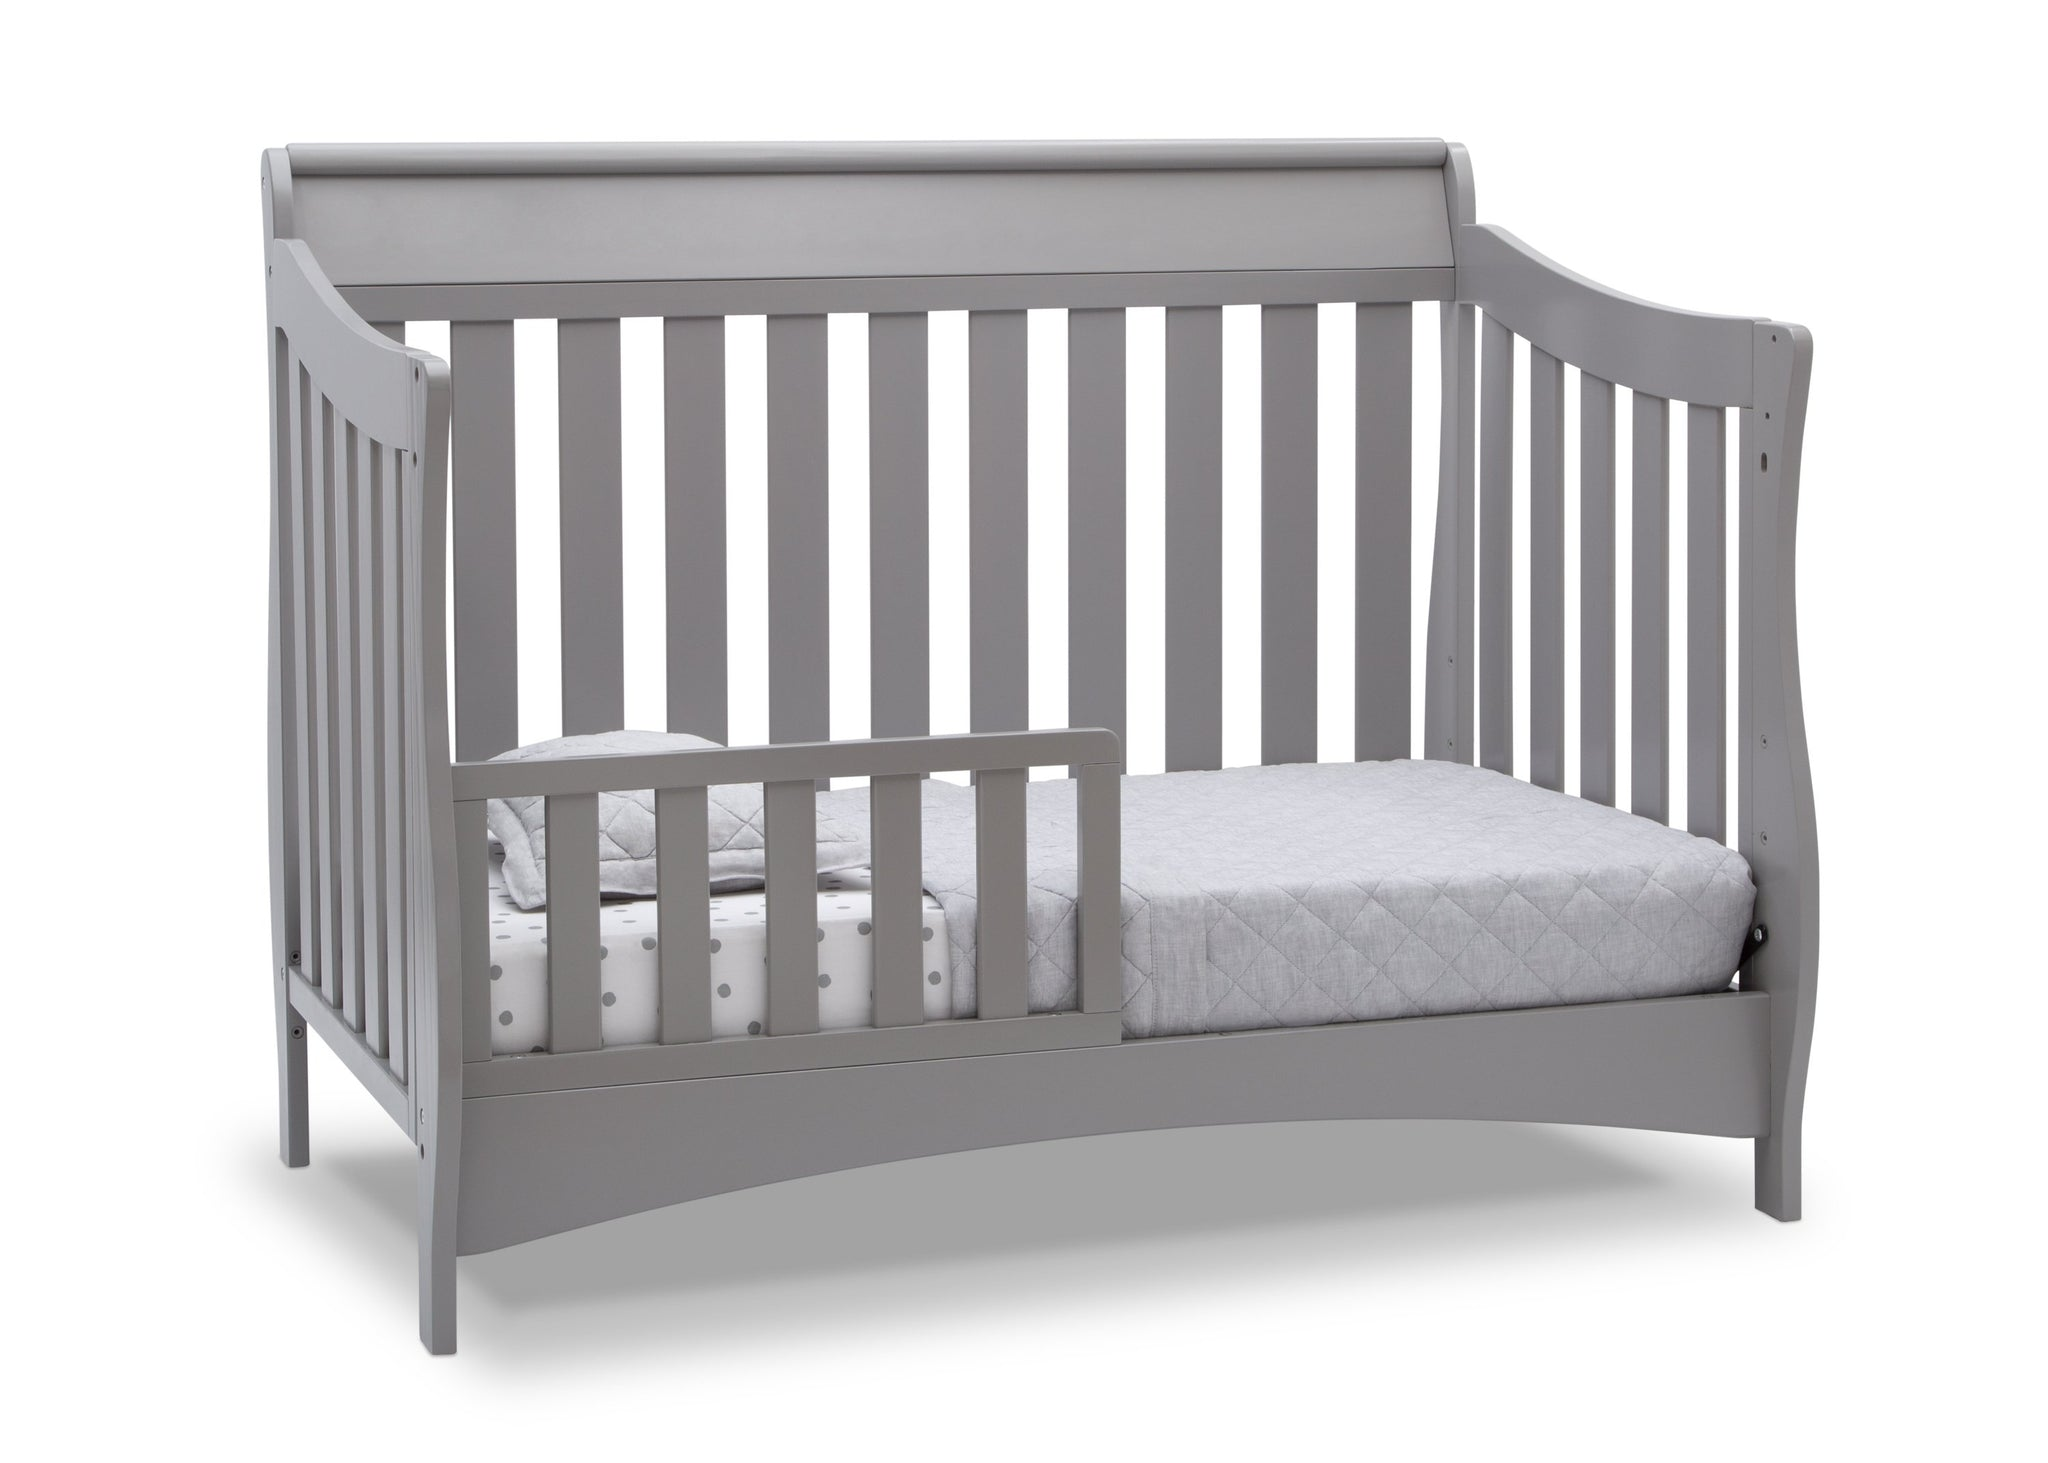 Delta Children Grey (026) Bentley S Series Deluxe 6-in-1 Convertible Crib, Right Toddler Bed Silo View